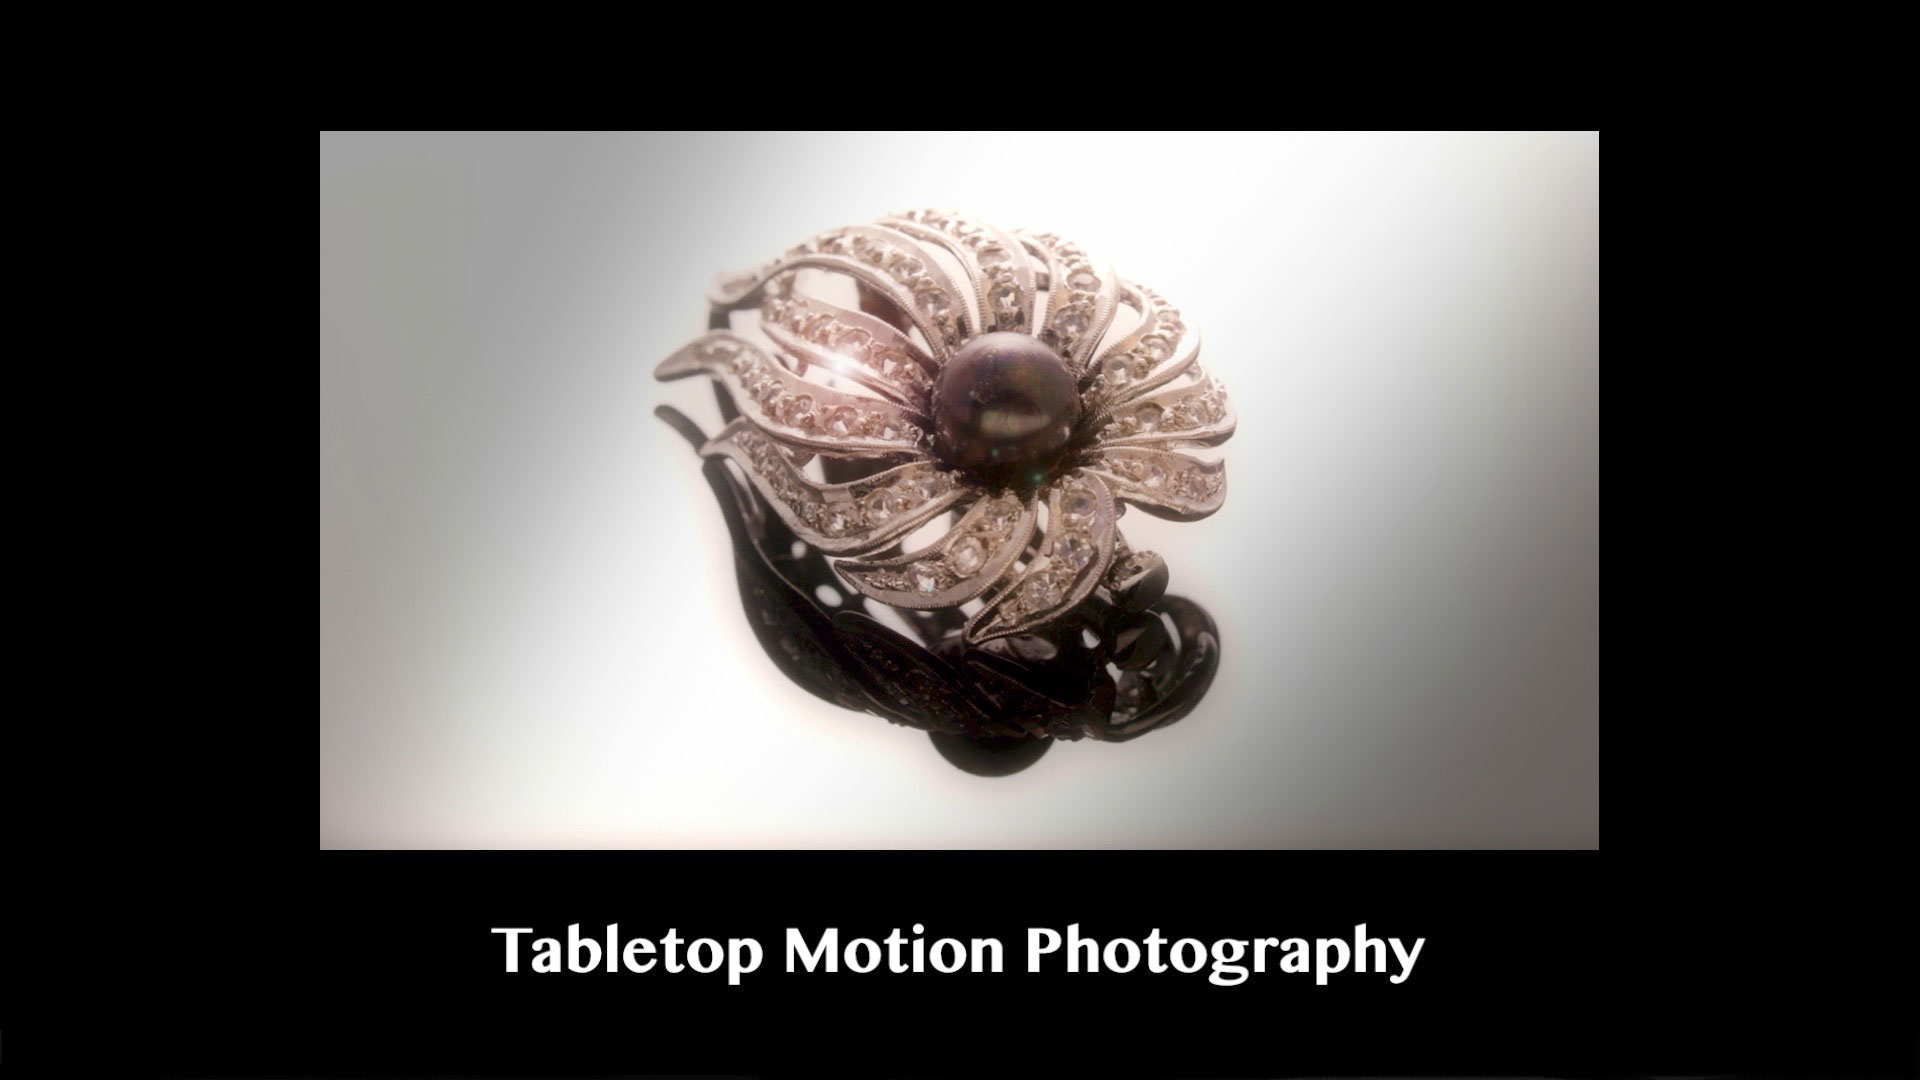 Tabletop Motion Photography